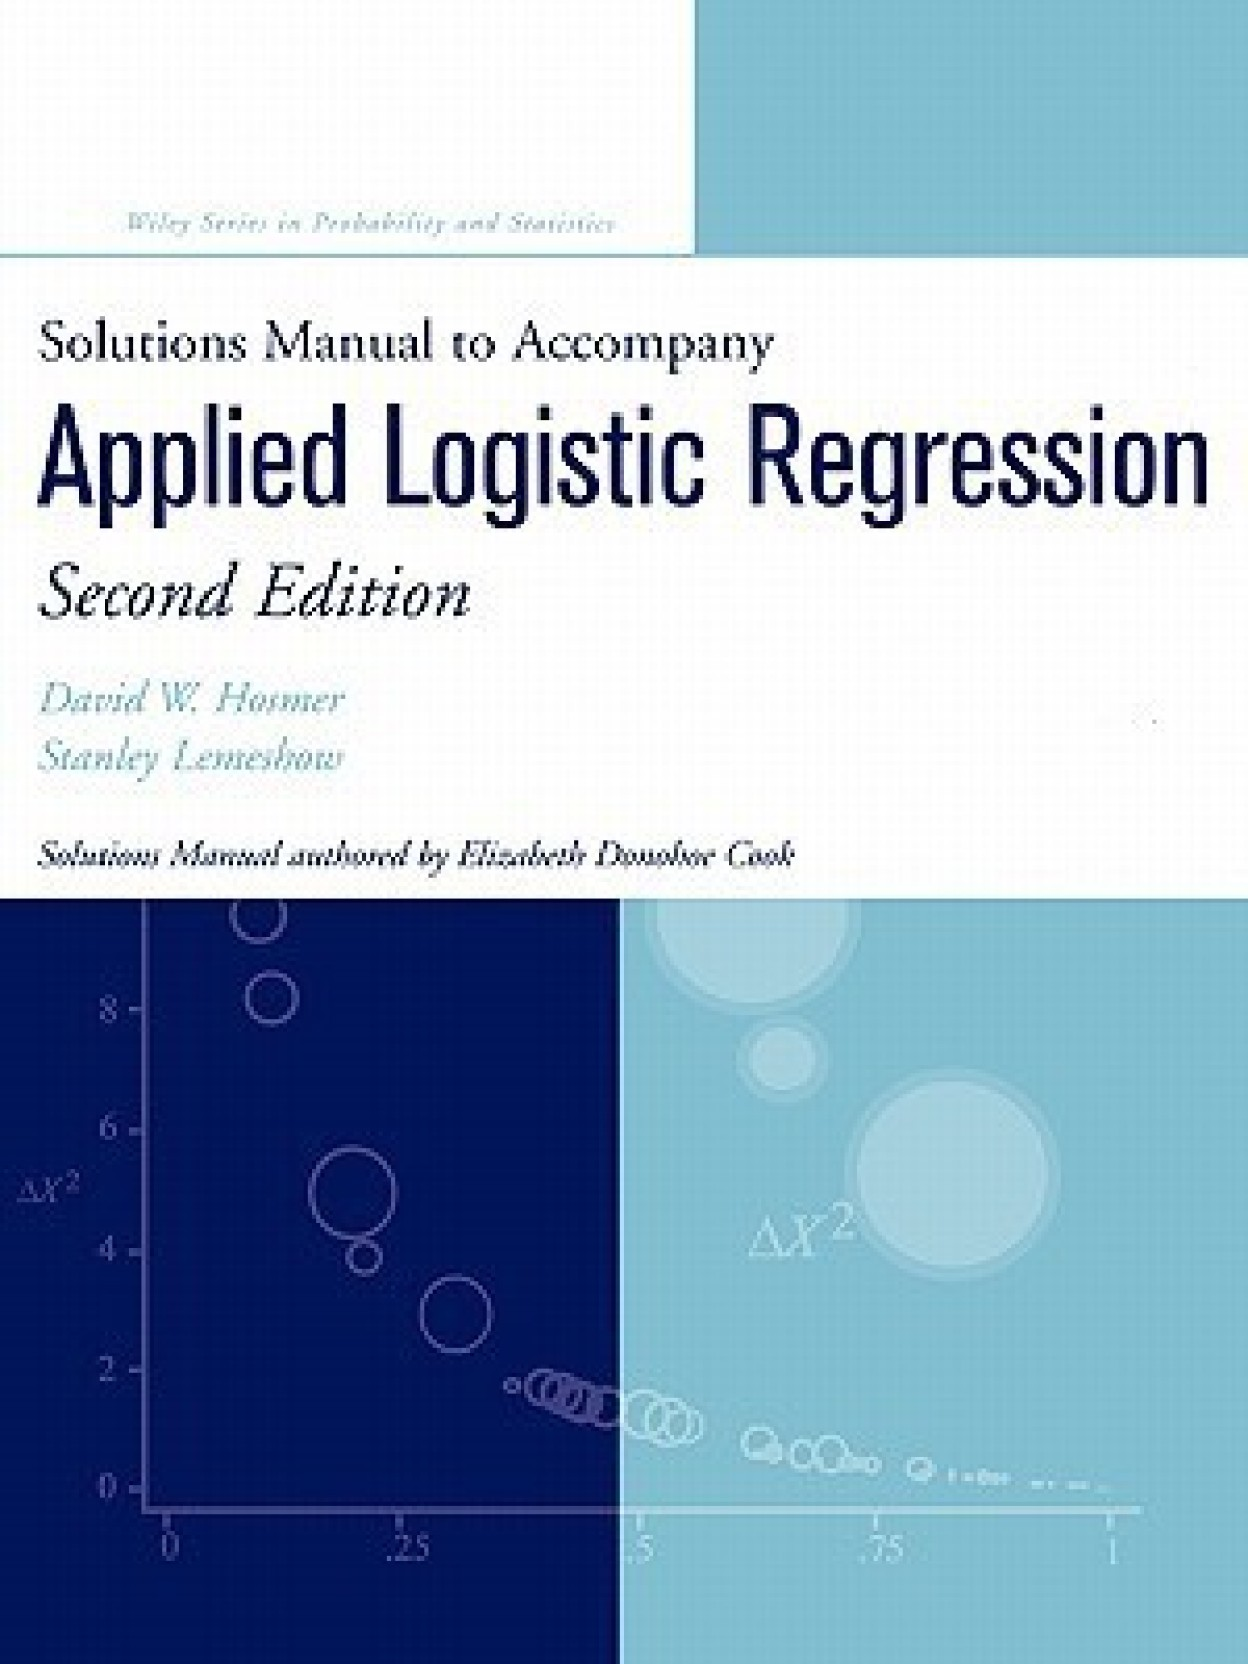 Applied Logistic Regression: Solutions Manual. Share